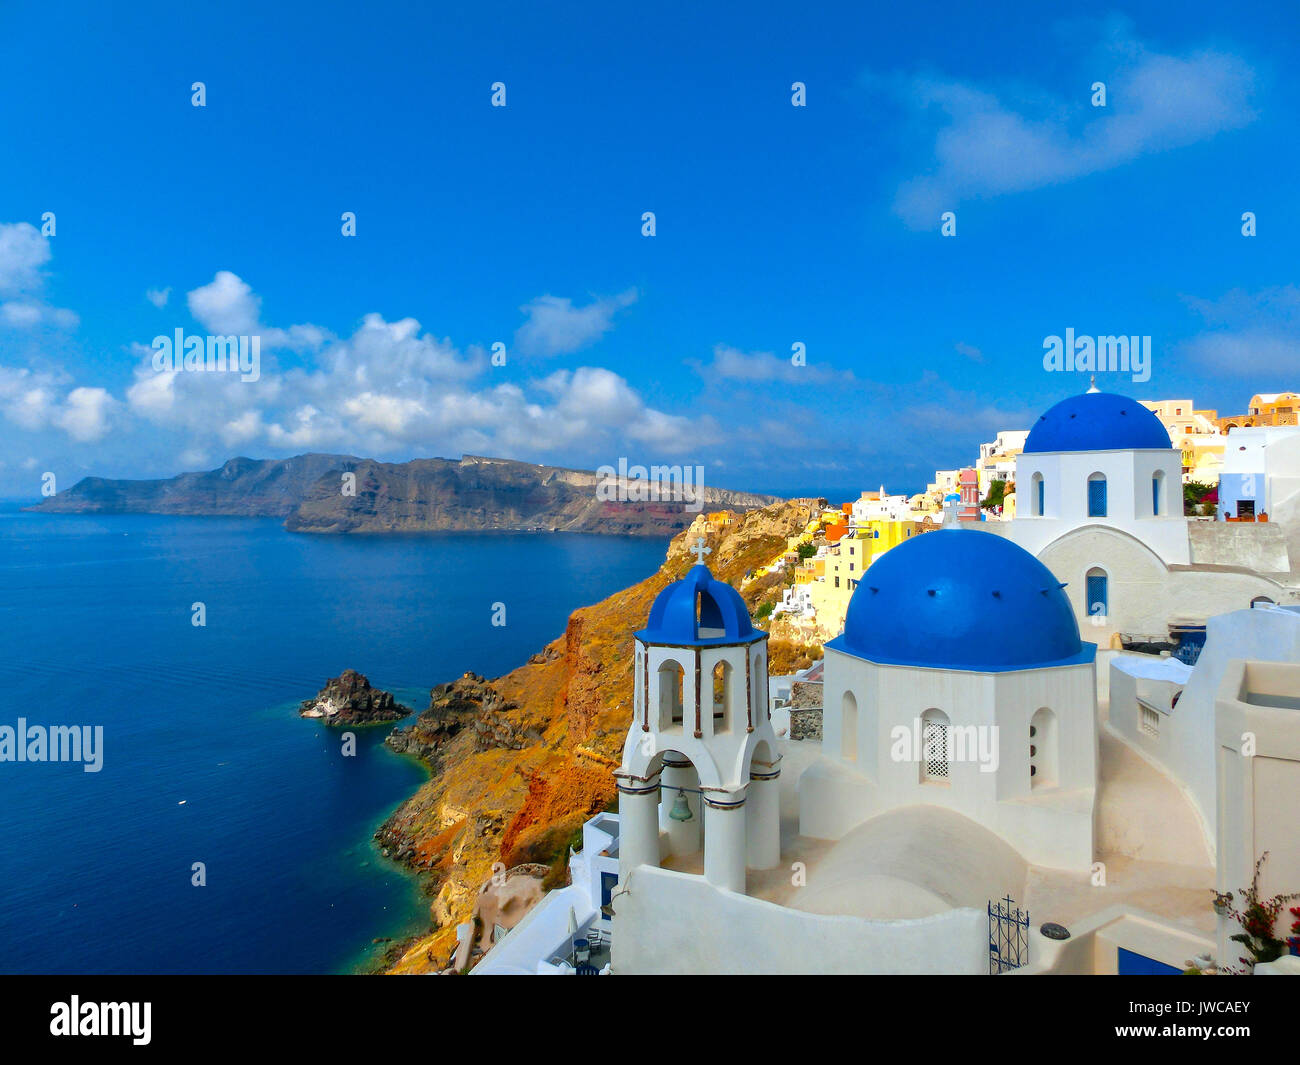 View to the sea from Oia village of Santorini island in Greece - Stock Image